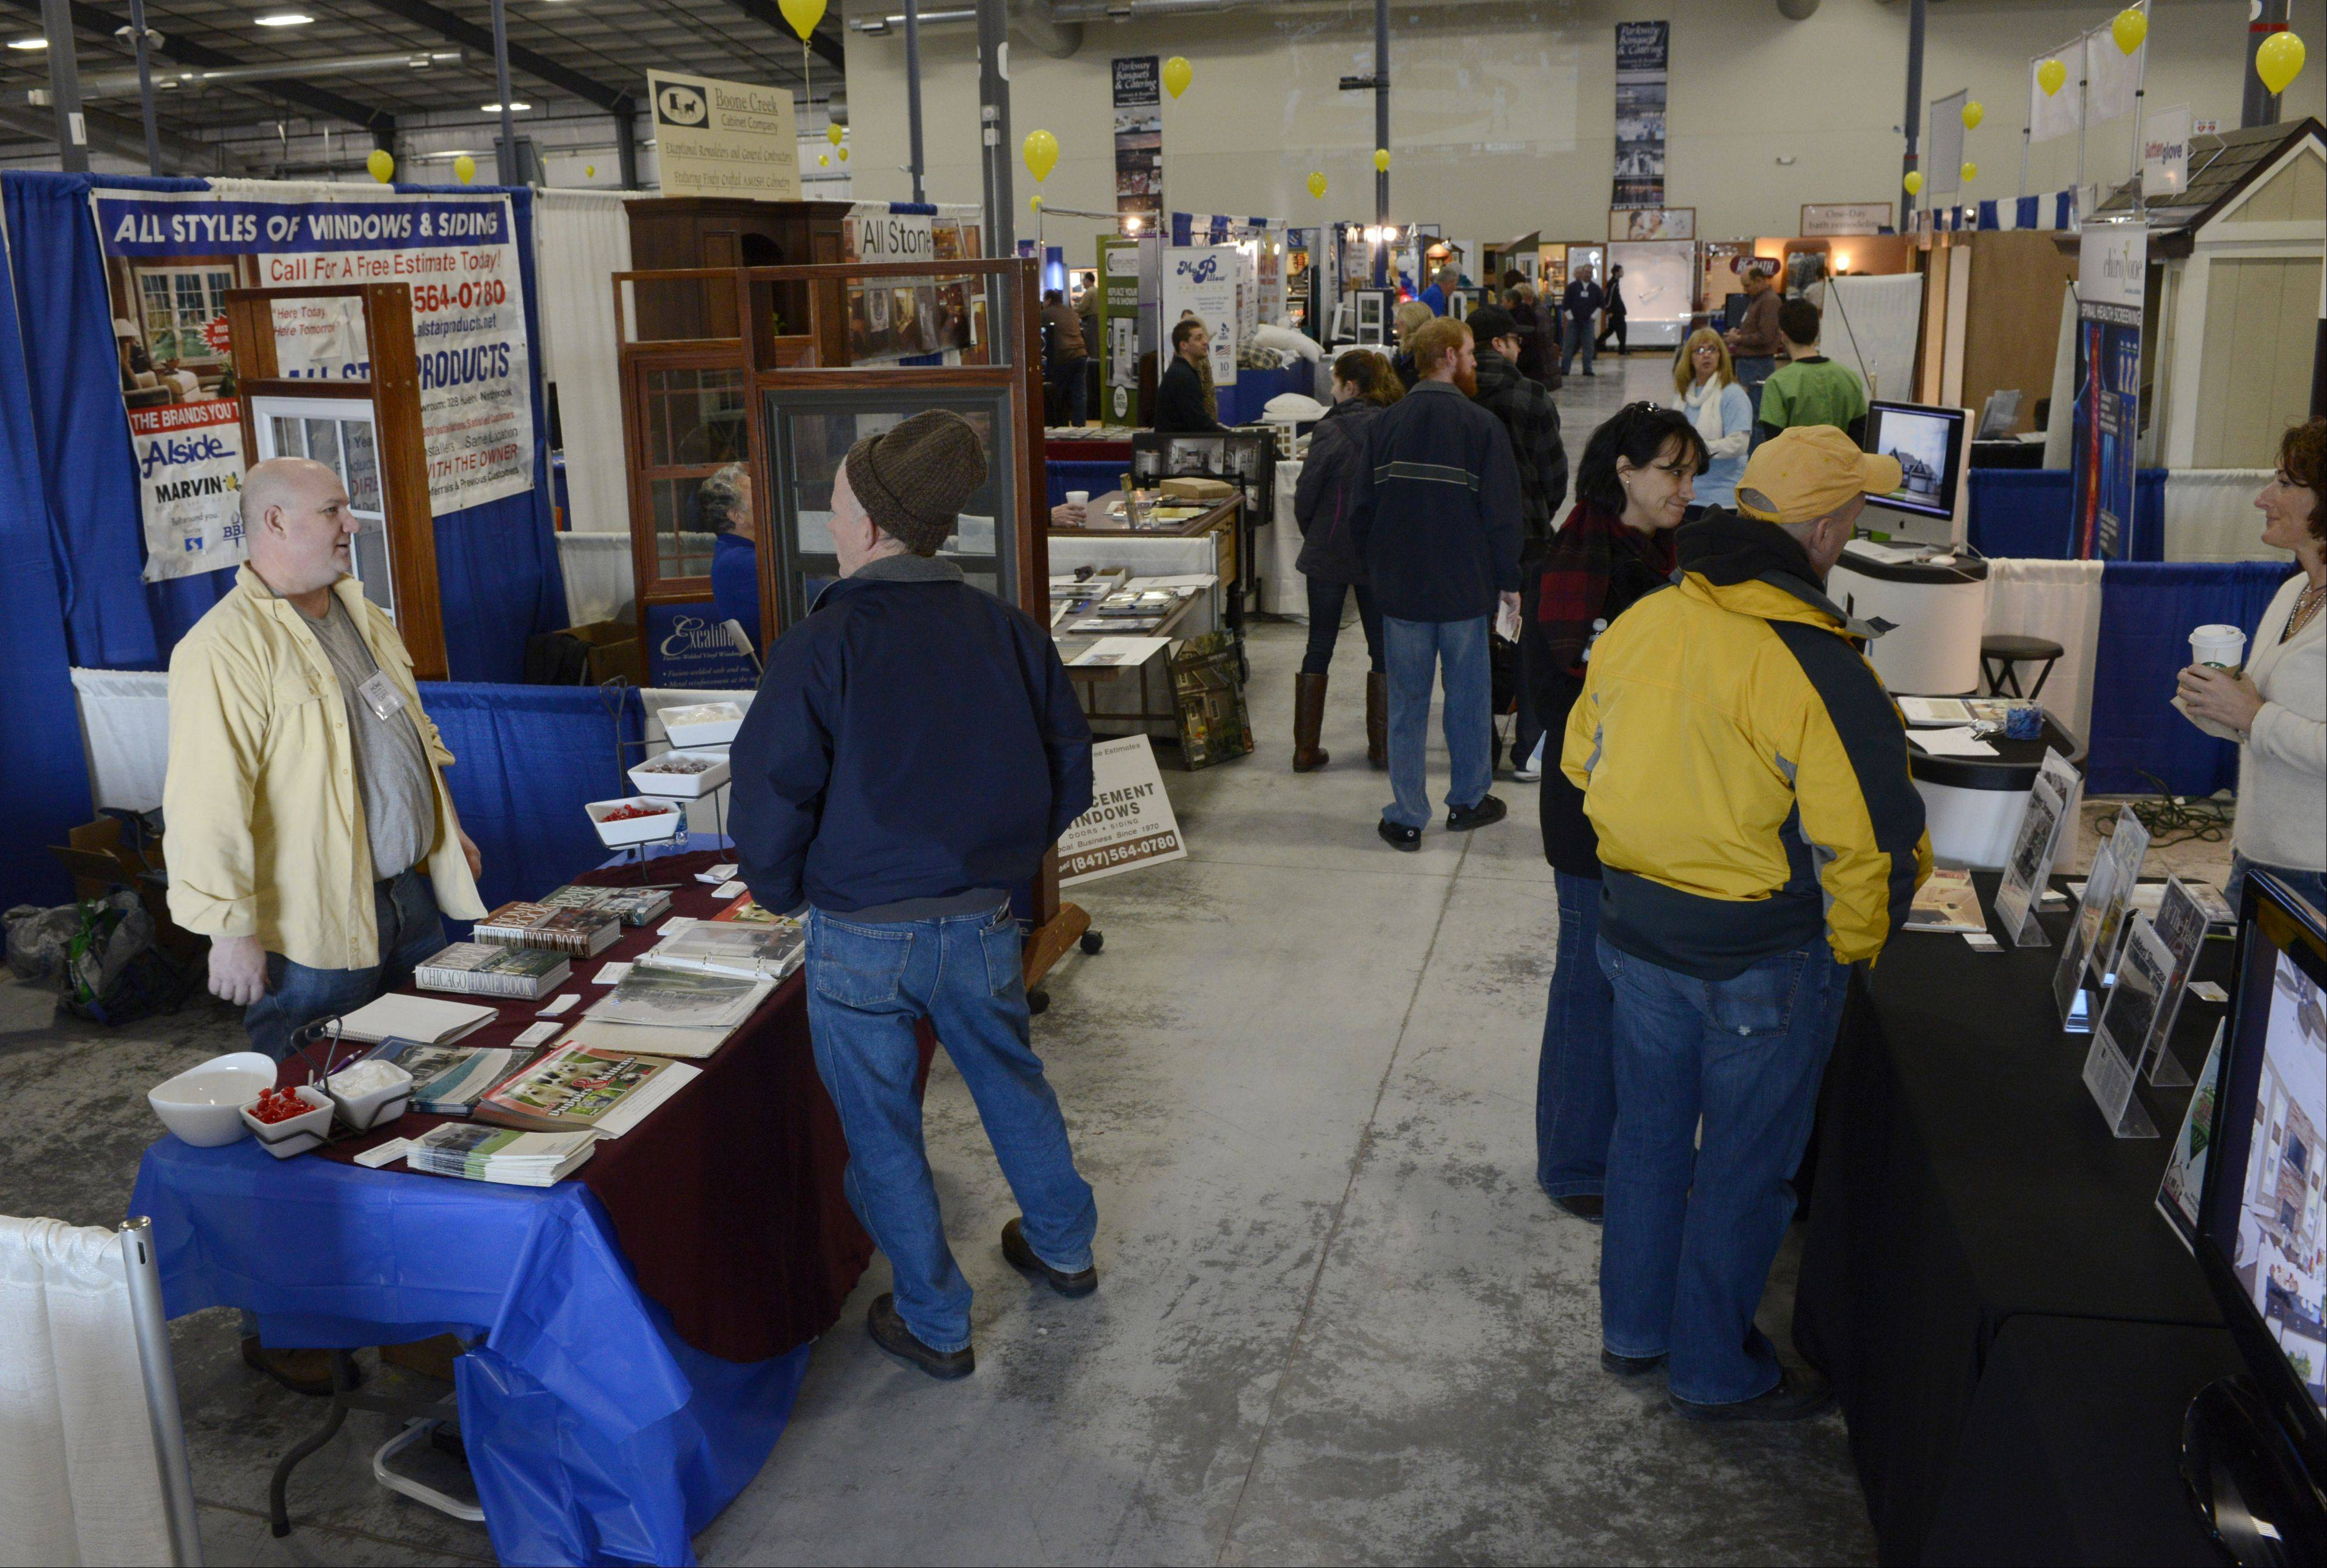 Professional contractors and amateur renovators traveled to the Lake County Fairgrounds in Grayslake this weekend for the Home Building and Remodeling Expo. The event featured demonstrations and presentations at more than 100 booths.